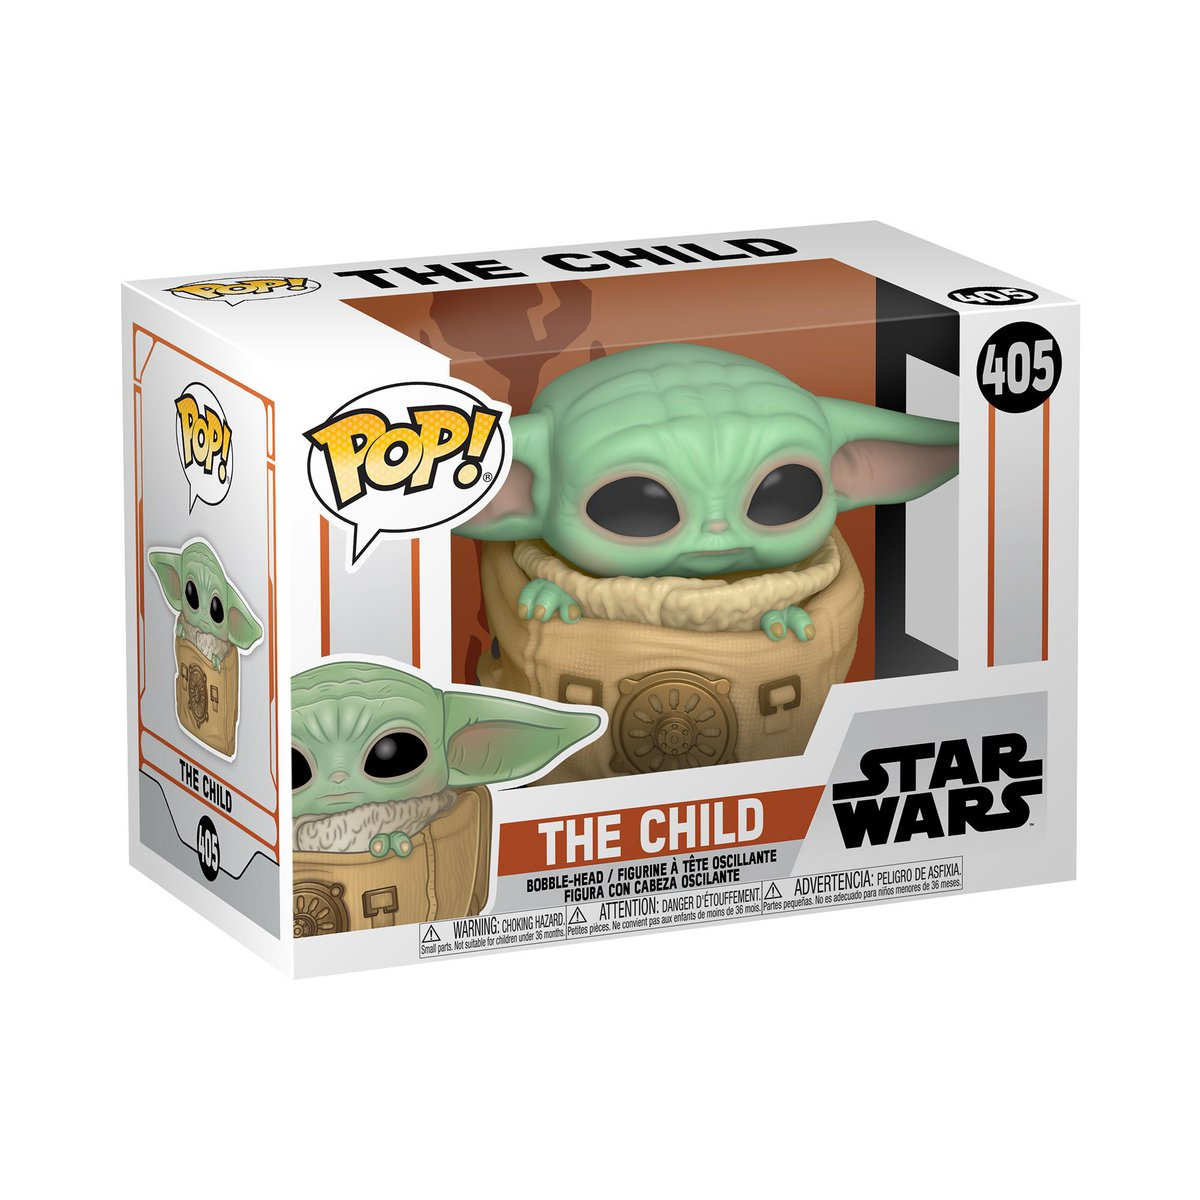 RT & follow @OriginalFunko for the chance to WIN The Child with bag Pop!  #Giveaway #FunkoGiveaway #TheMandalorian #DisneyPlus